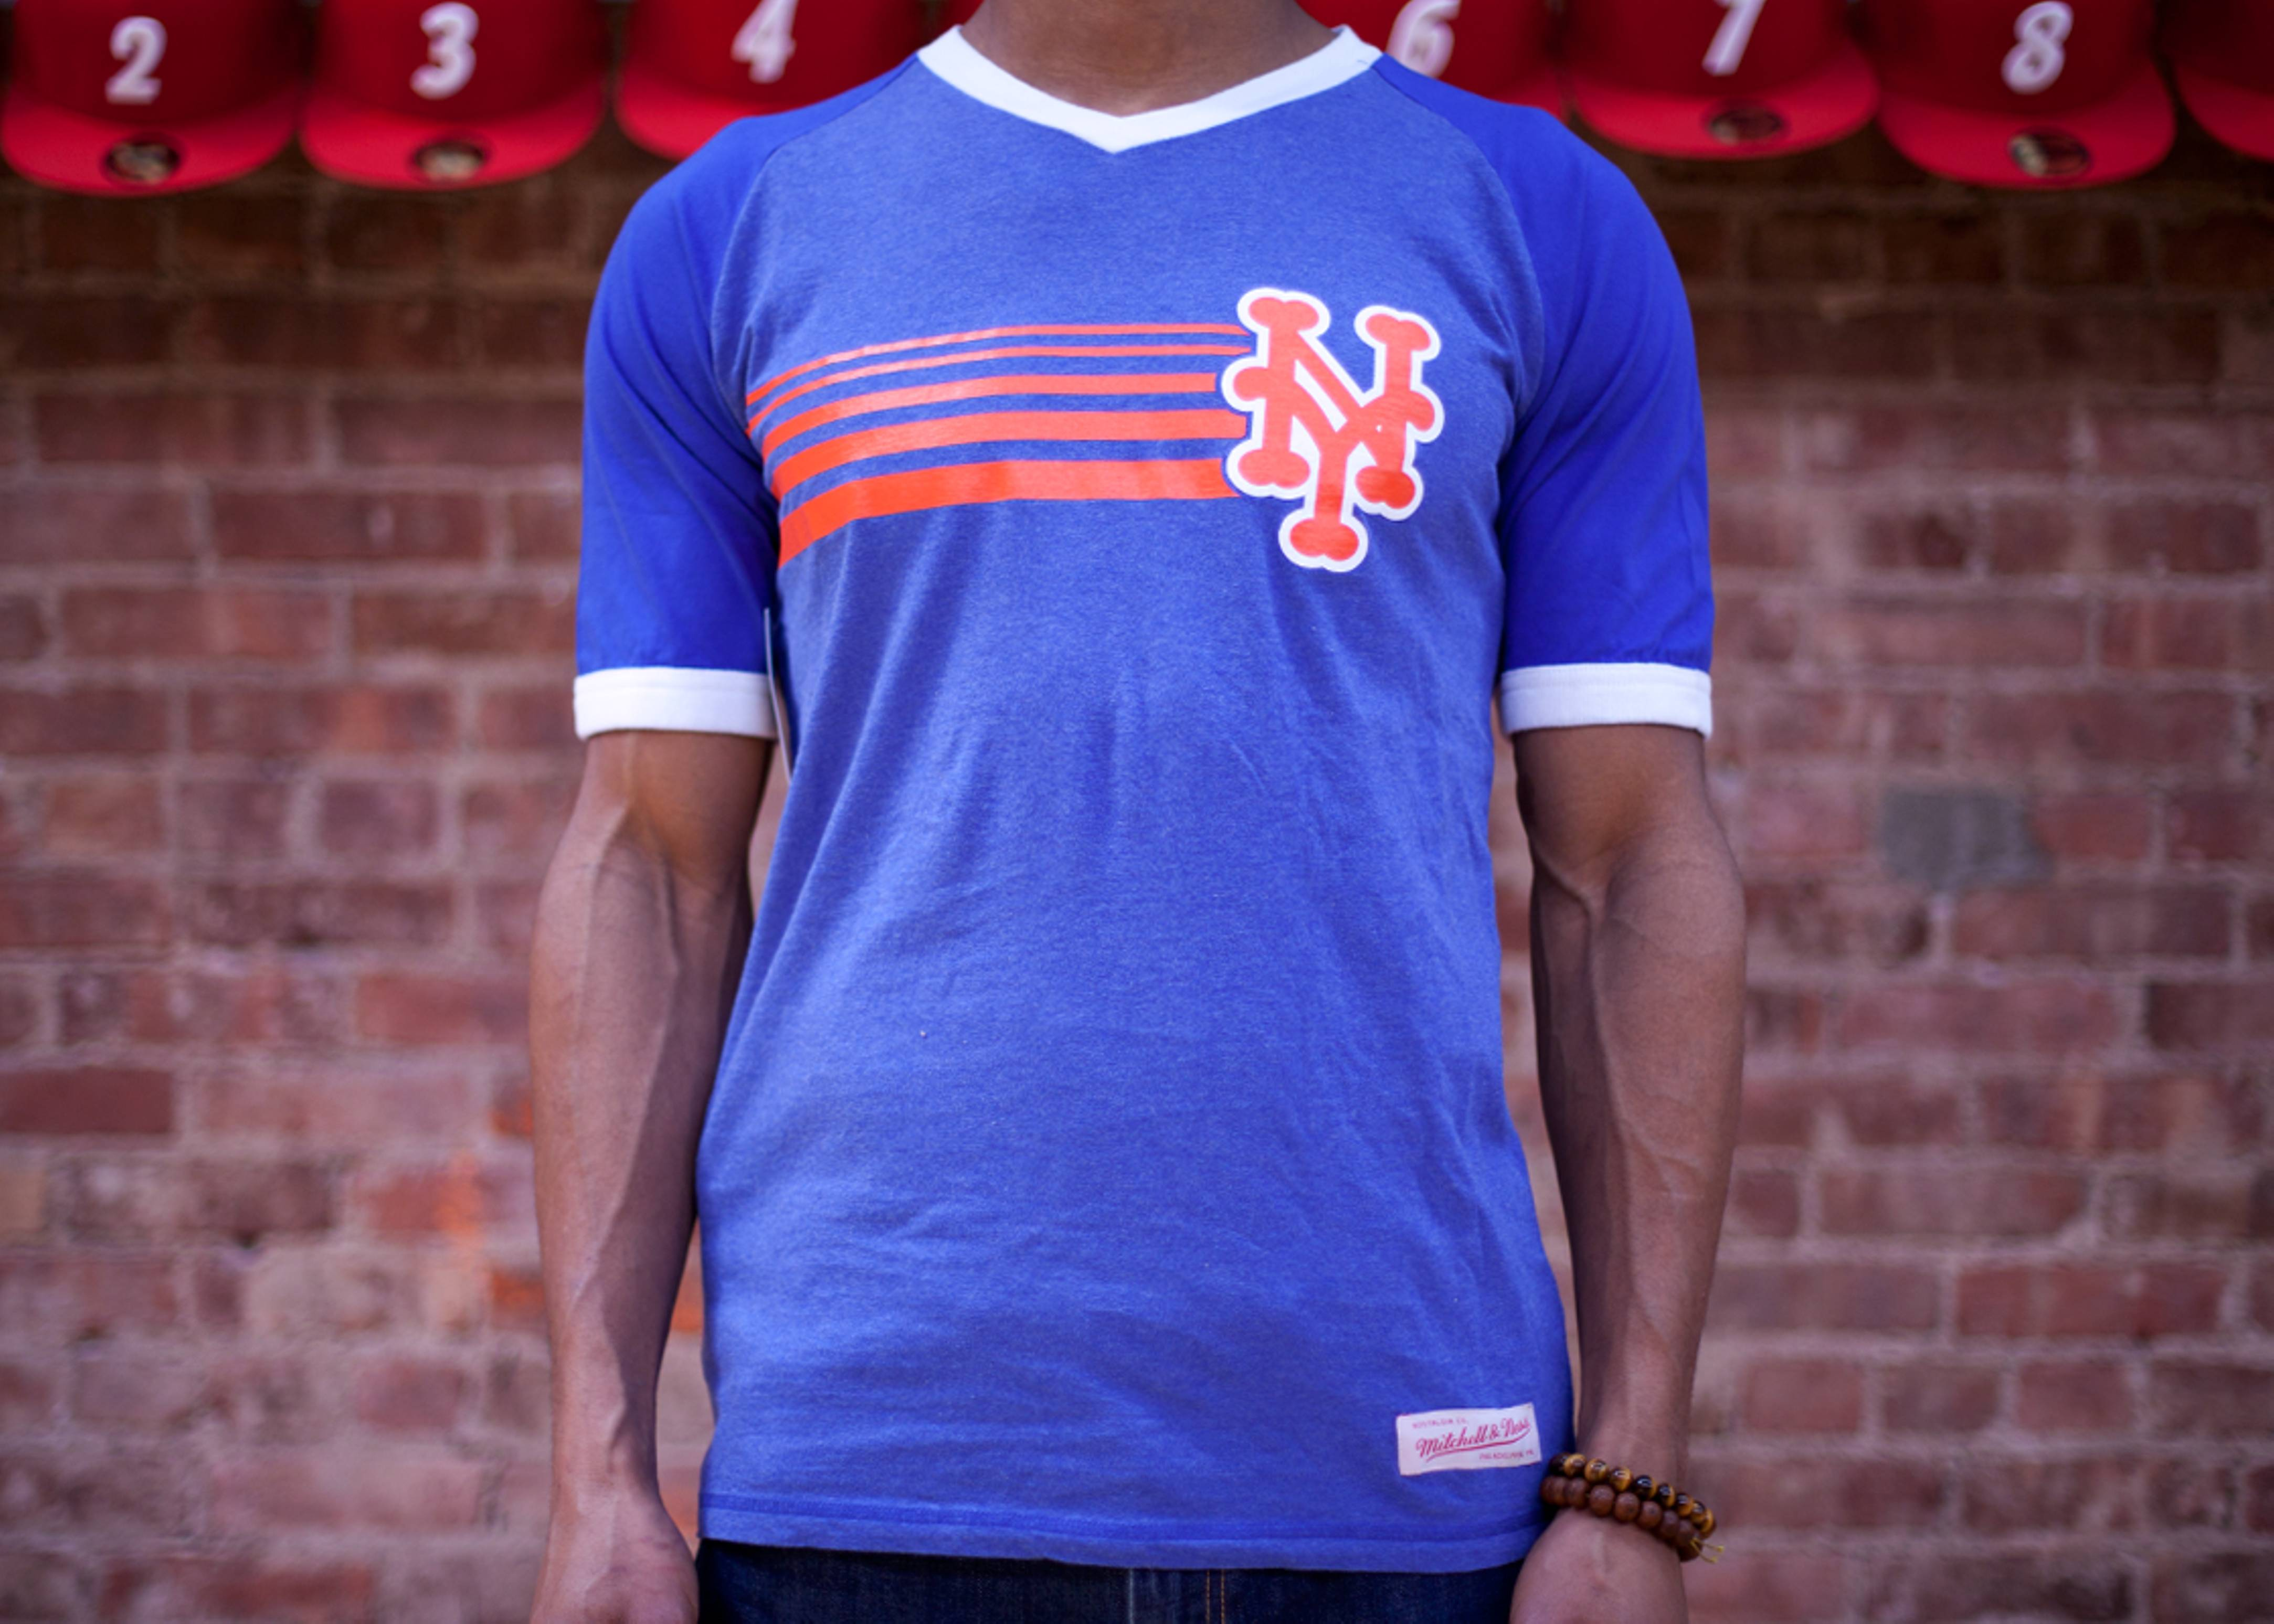 new york mets undefeated v-neck tee